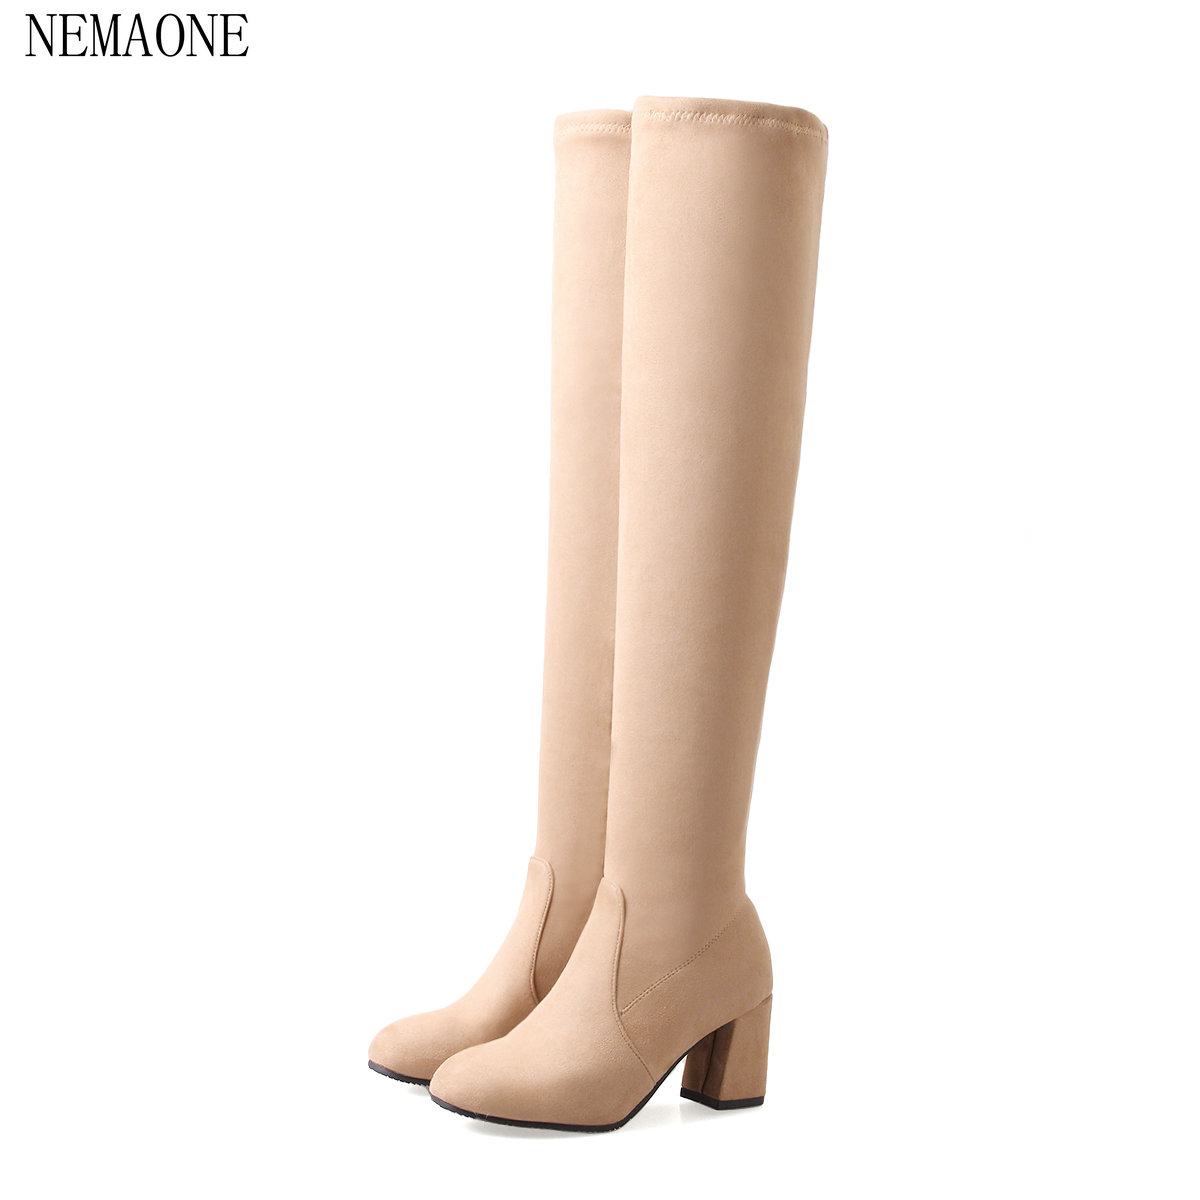 NEMAONE Woman Over The Knee Boots Stretch Shoes Fashion Side Zipper Square High Heel Dress Thigh Boots Black avvvxbw 2016 new brand long boots fashion elastic over the knee boots shoes woman square heel genuine leather thigh high boots